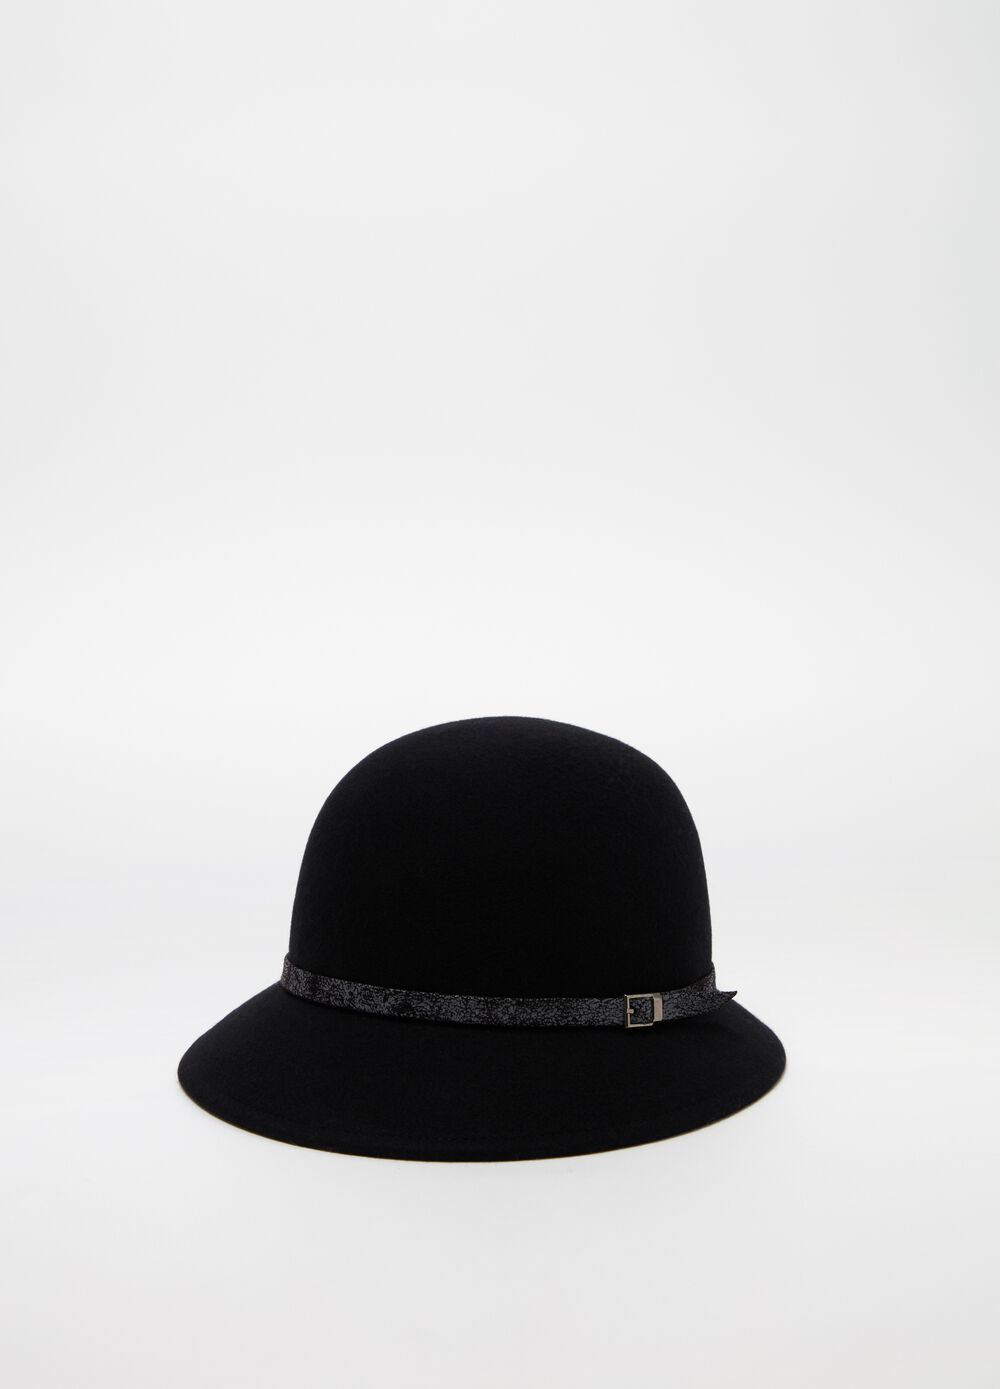 Felt cloche hat with strap